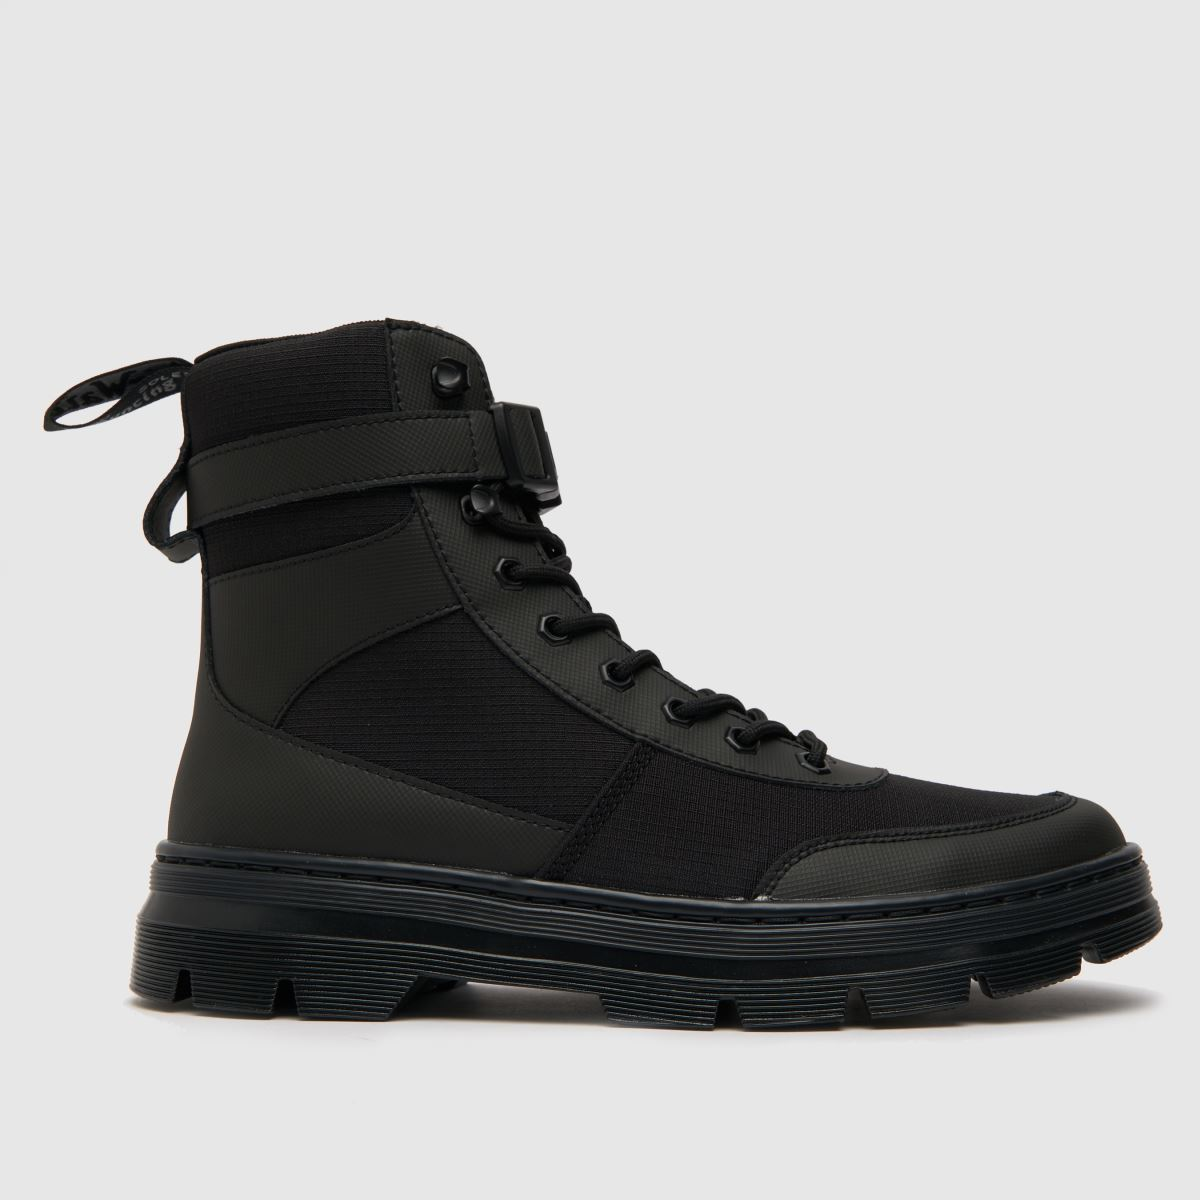 Dr Martens Black Combs Tech Shoes